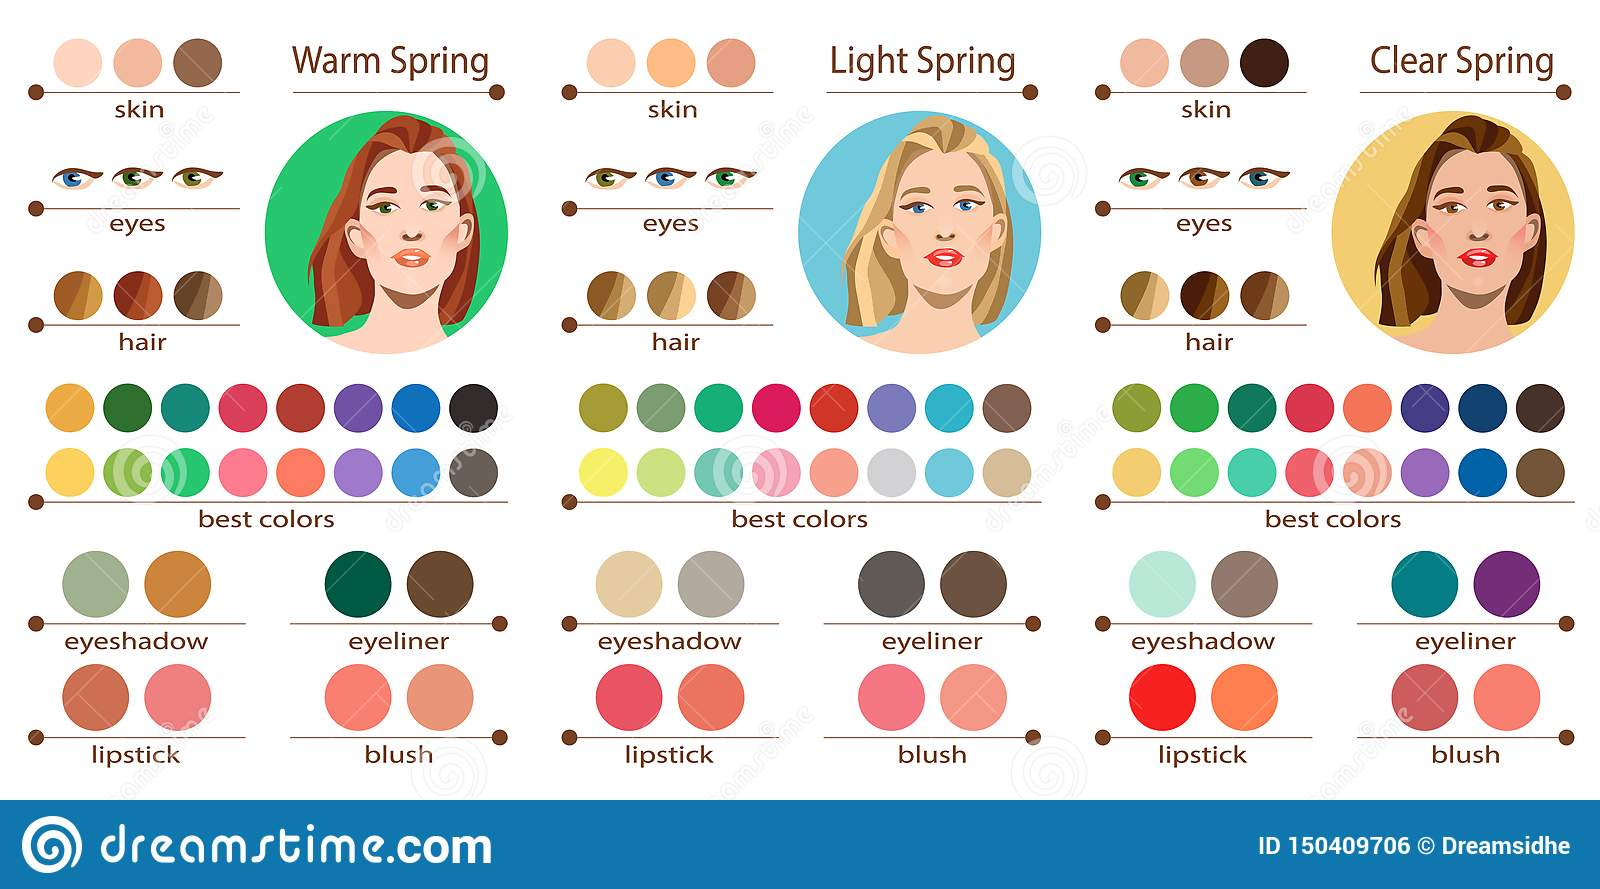 Seasonal Color Analysis Palette For Light Warm And Clear Spring Best Colors For Spring Type Of Female Appearance F Stock Vector Illustration Of Appearance Facial 150409706